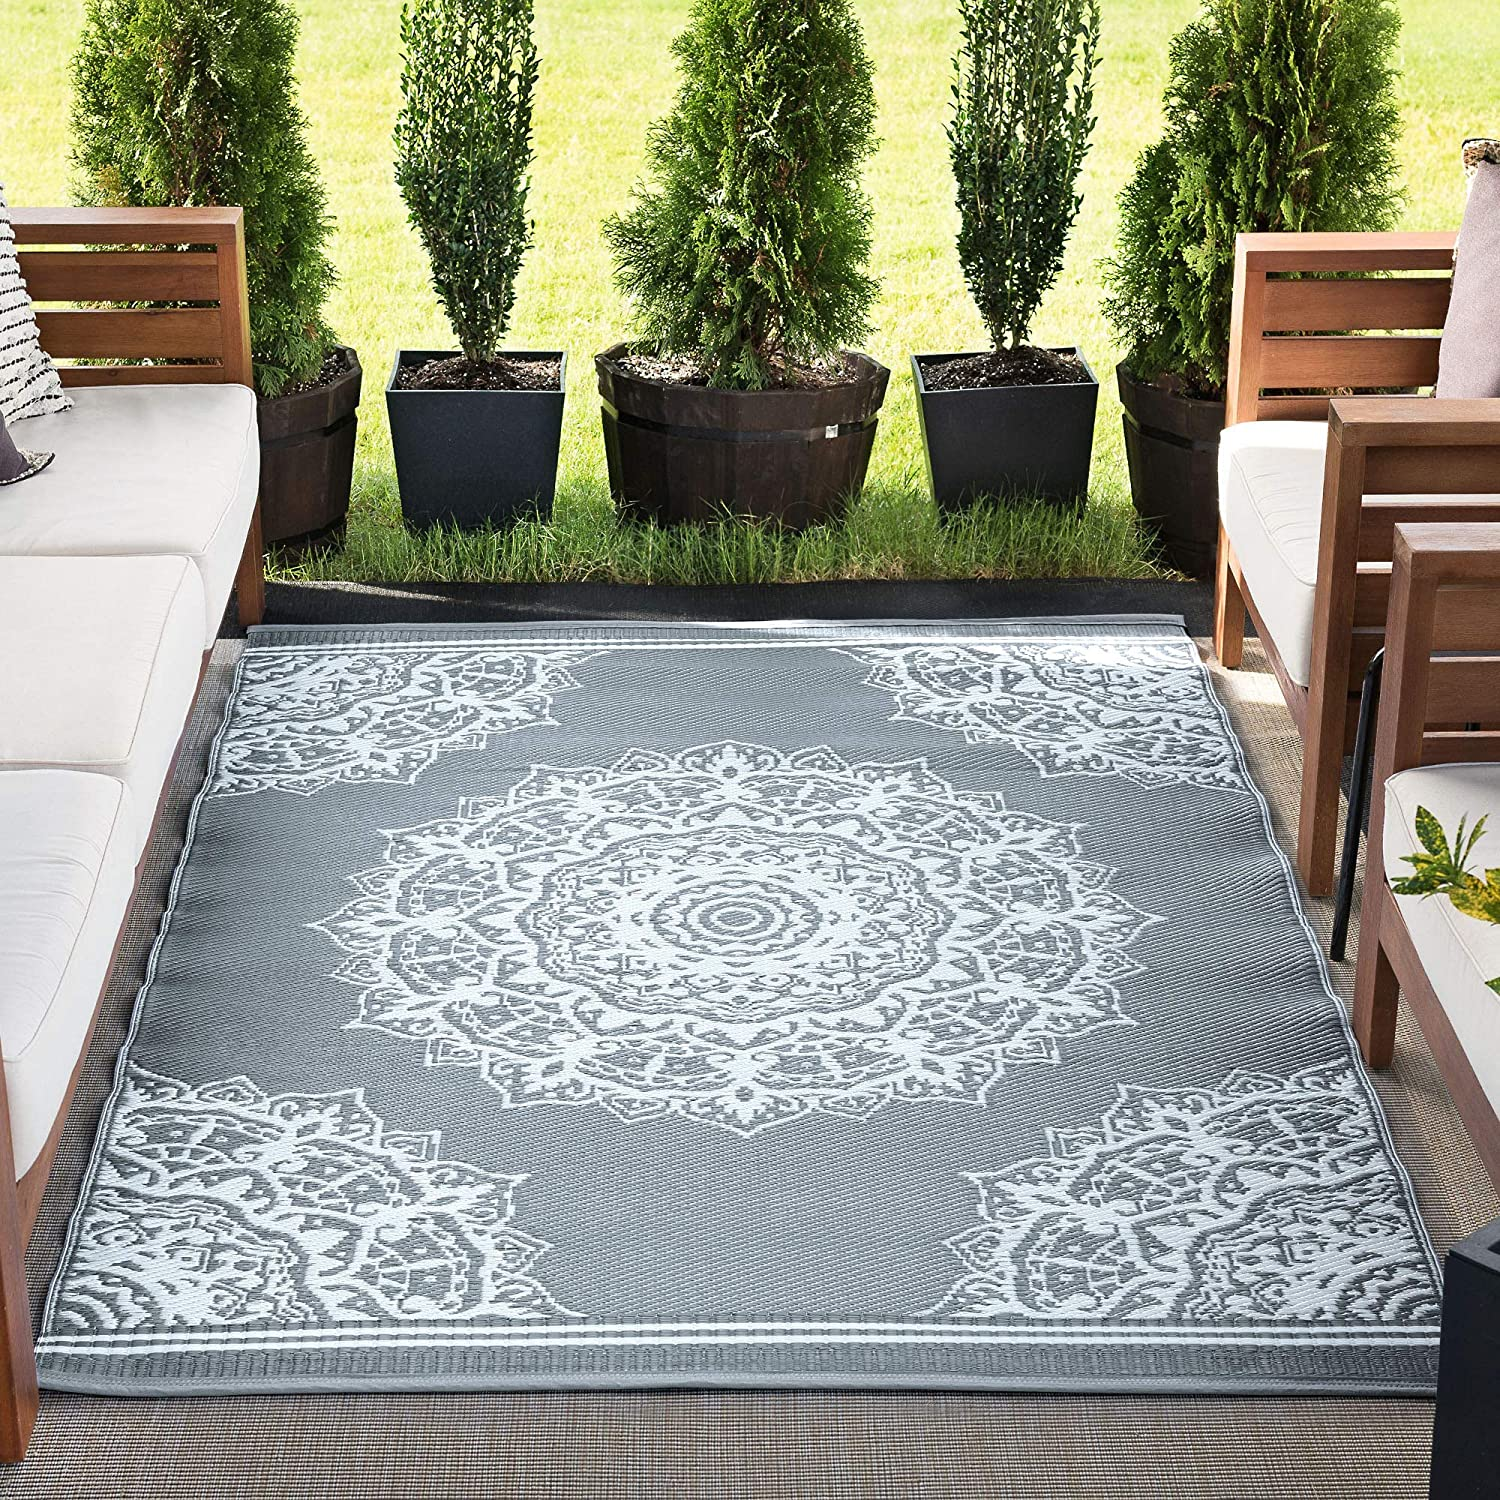 Max 56% OFF Anvi Gray Reversible Plastic Straw Outdoor Direct store Pat Patio for 5x7 Rug